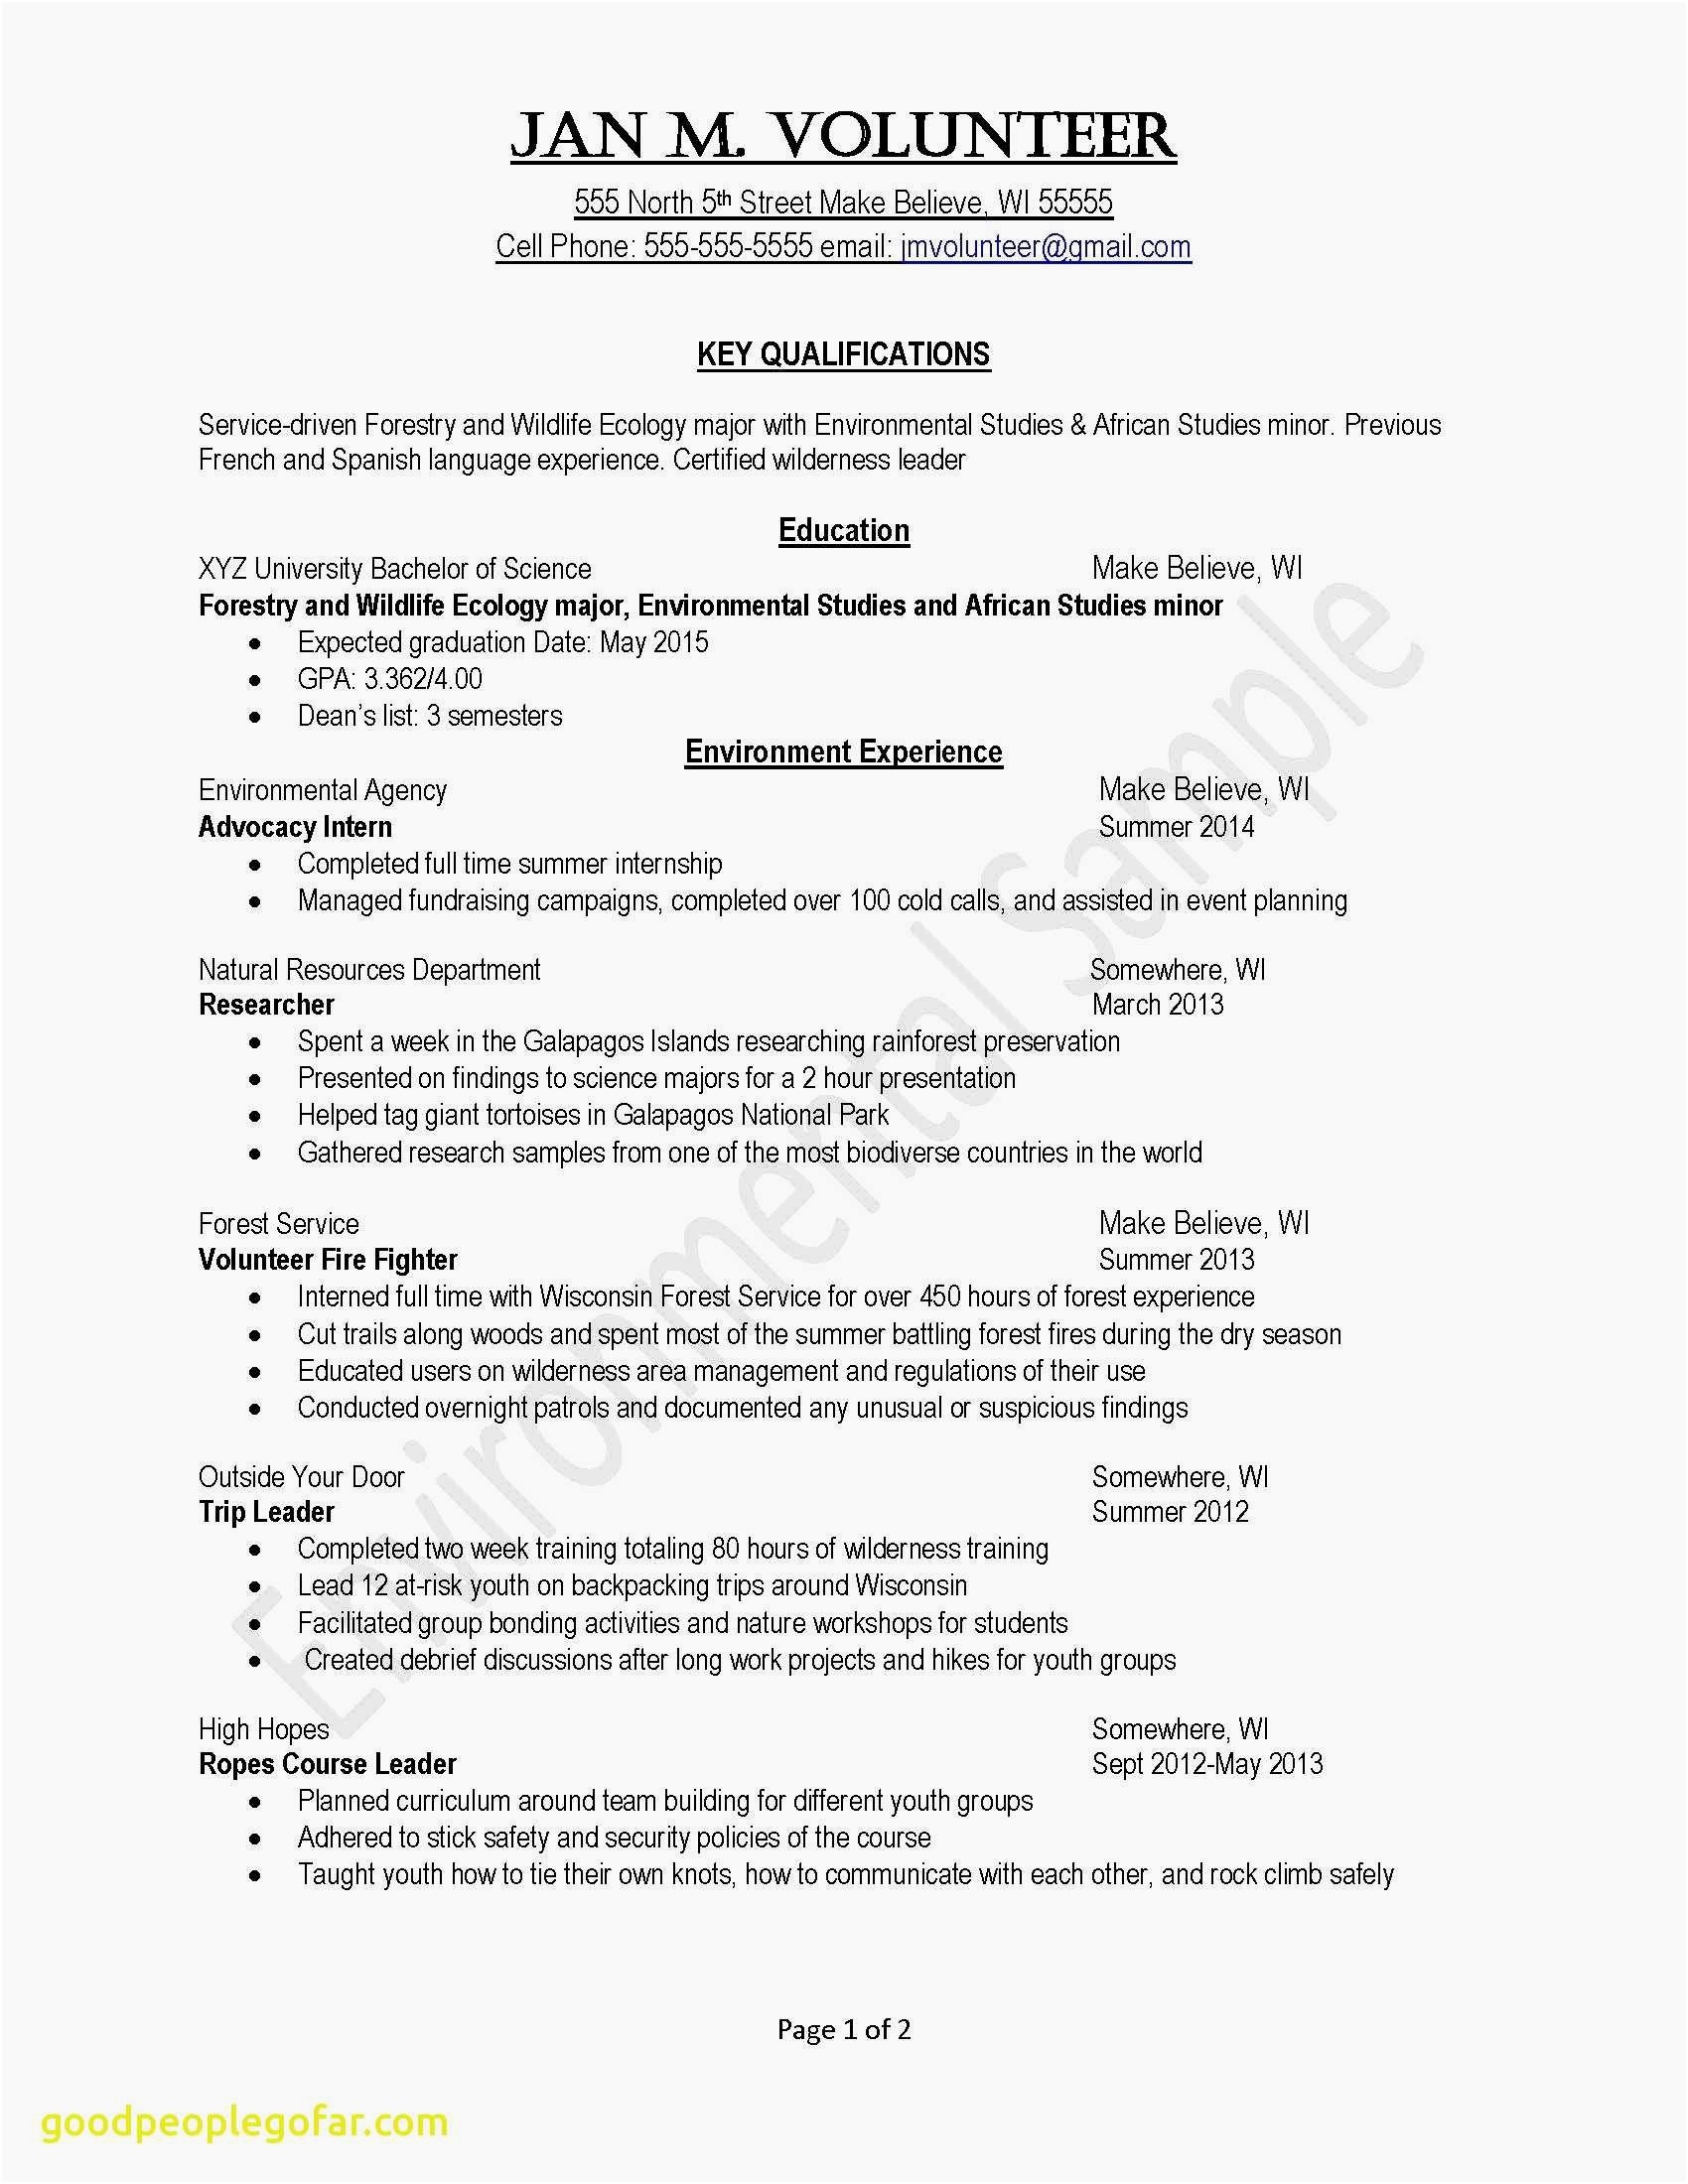 Resume with References - French Francophone Countries Reference Awesome Examples Resumes